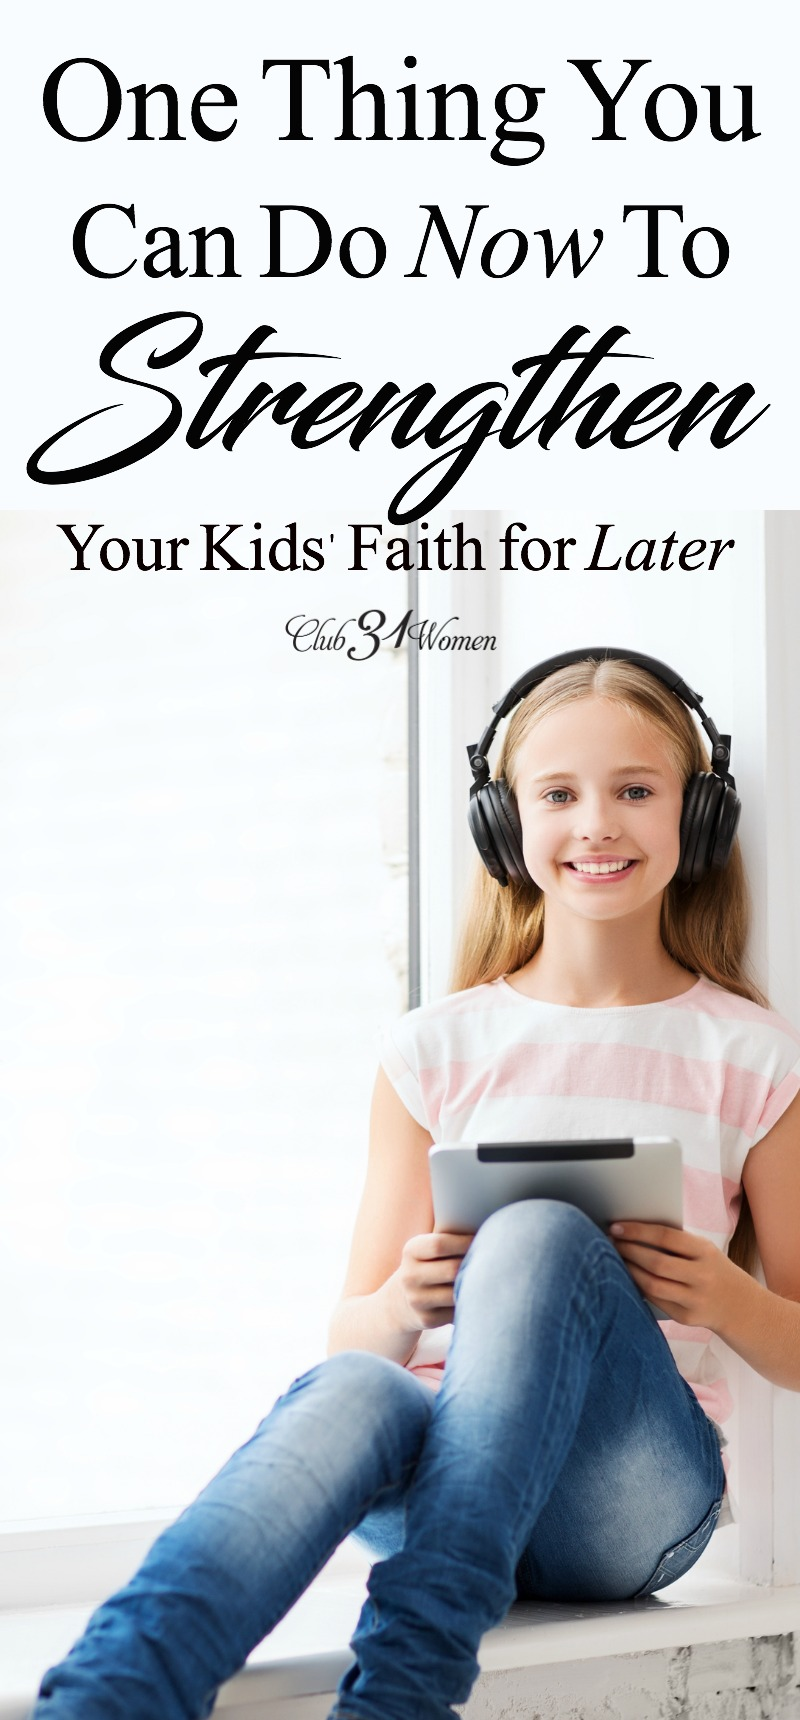 How can we help prepare our children to live out their faith as they grow and become adults? Here's one way to help strengthen their faith... via @Club31Women